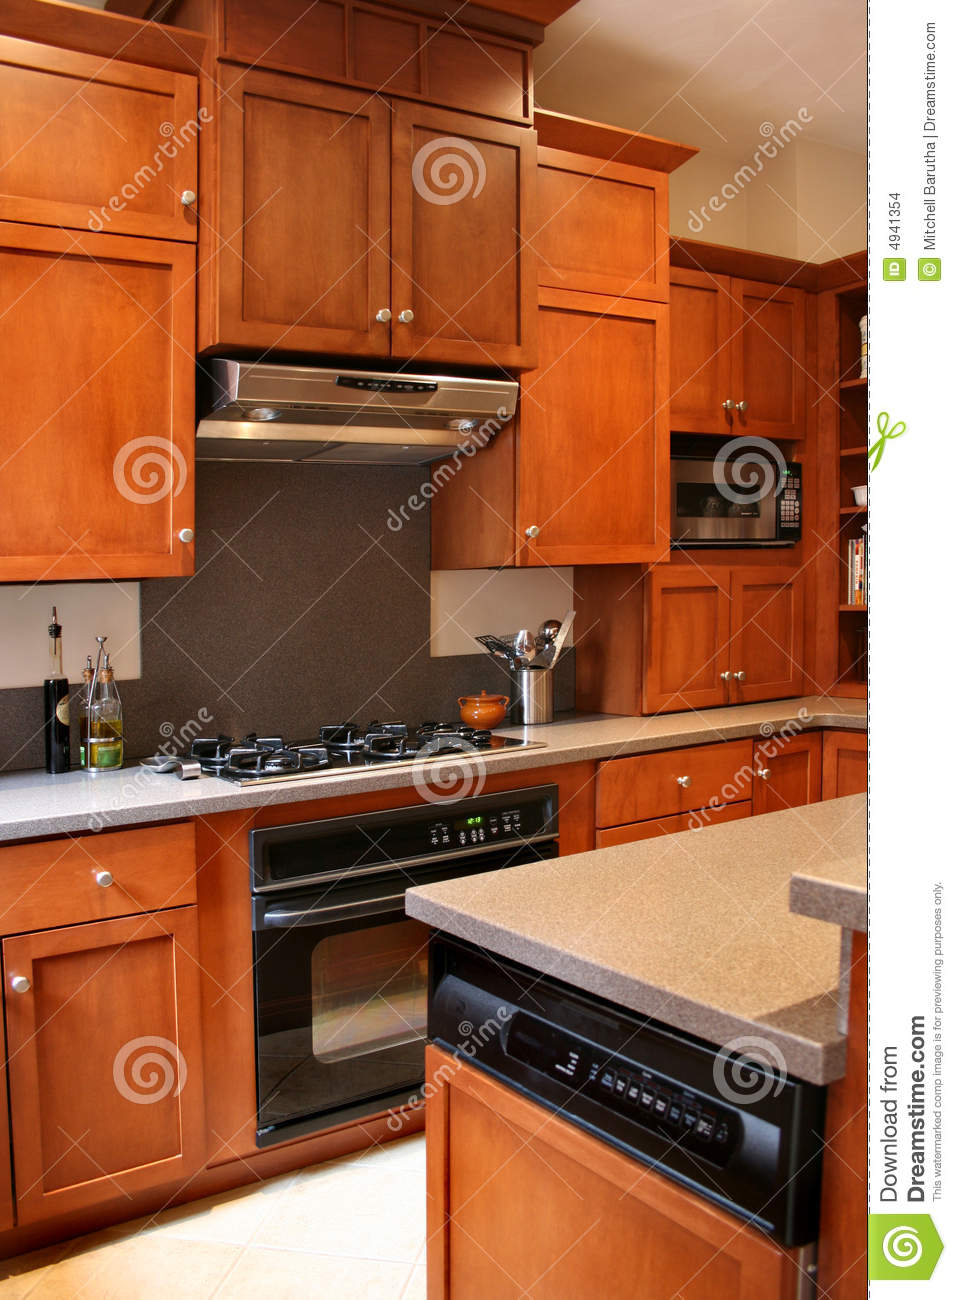 Kitchen wood cabinets black and stainless stove stock